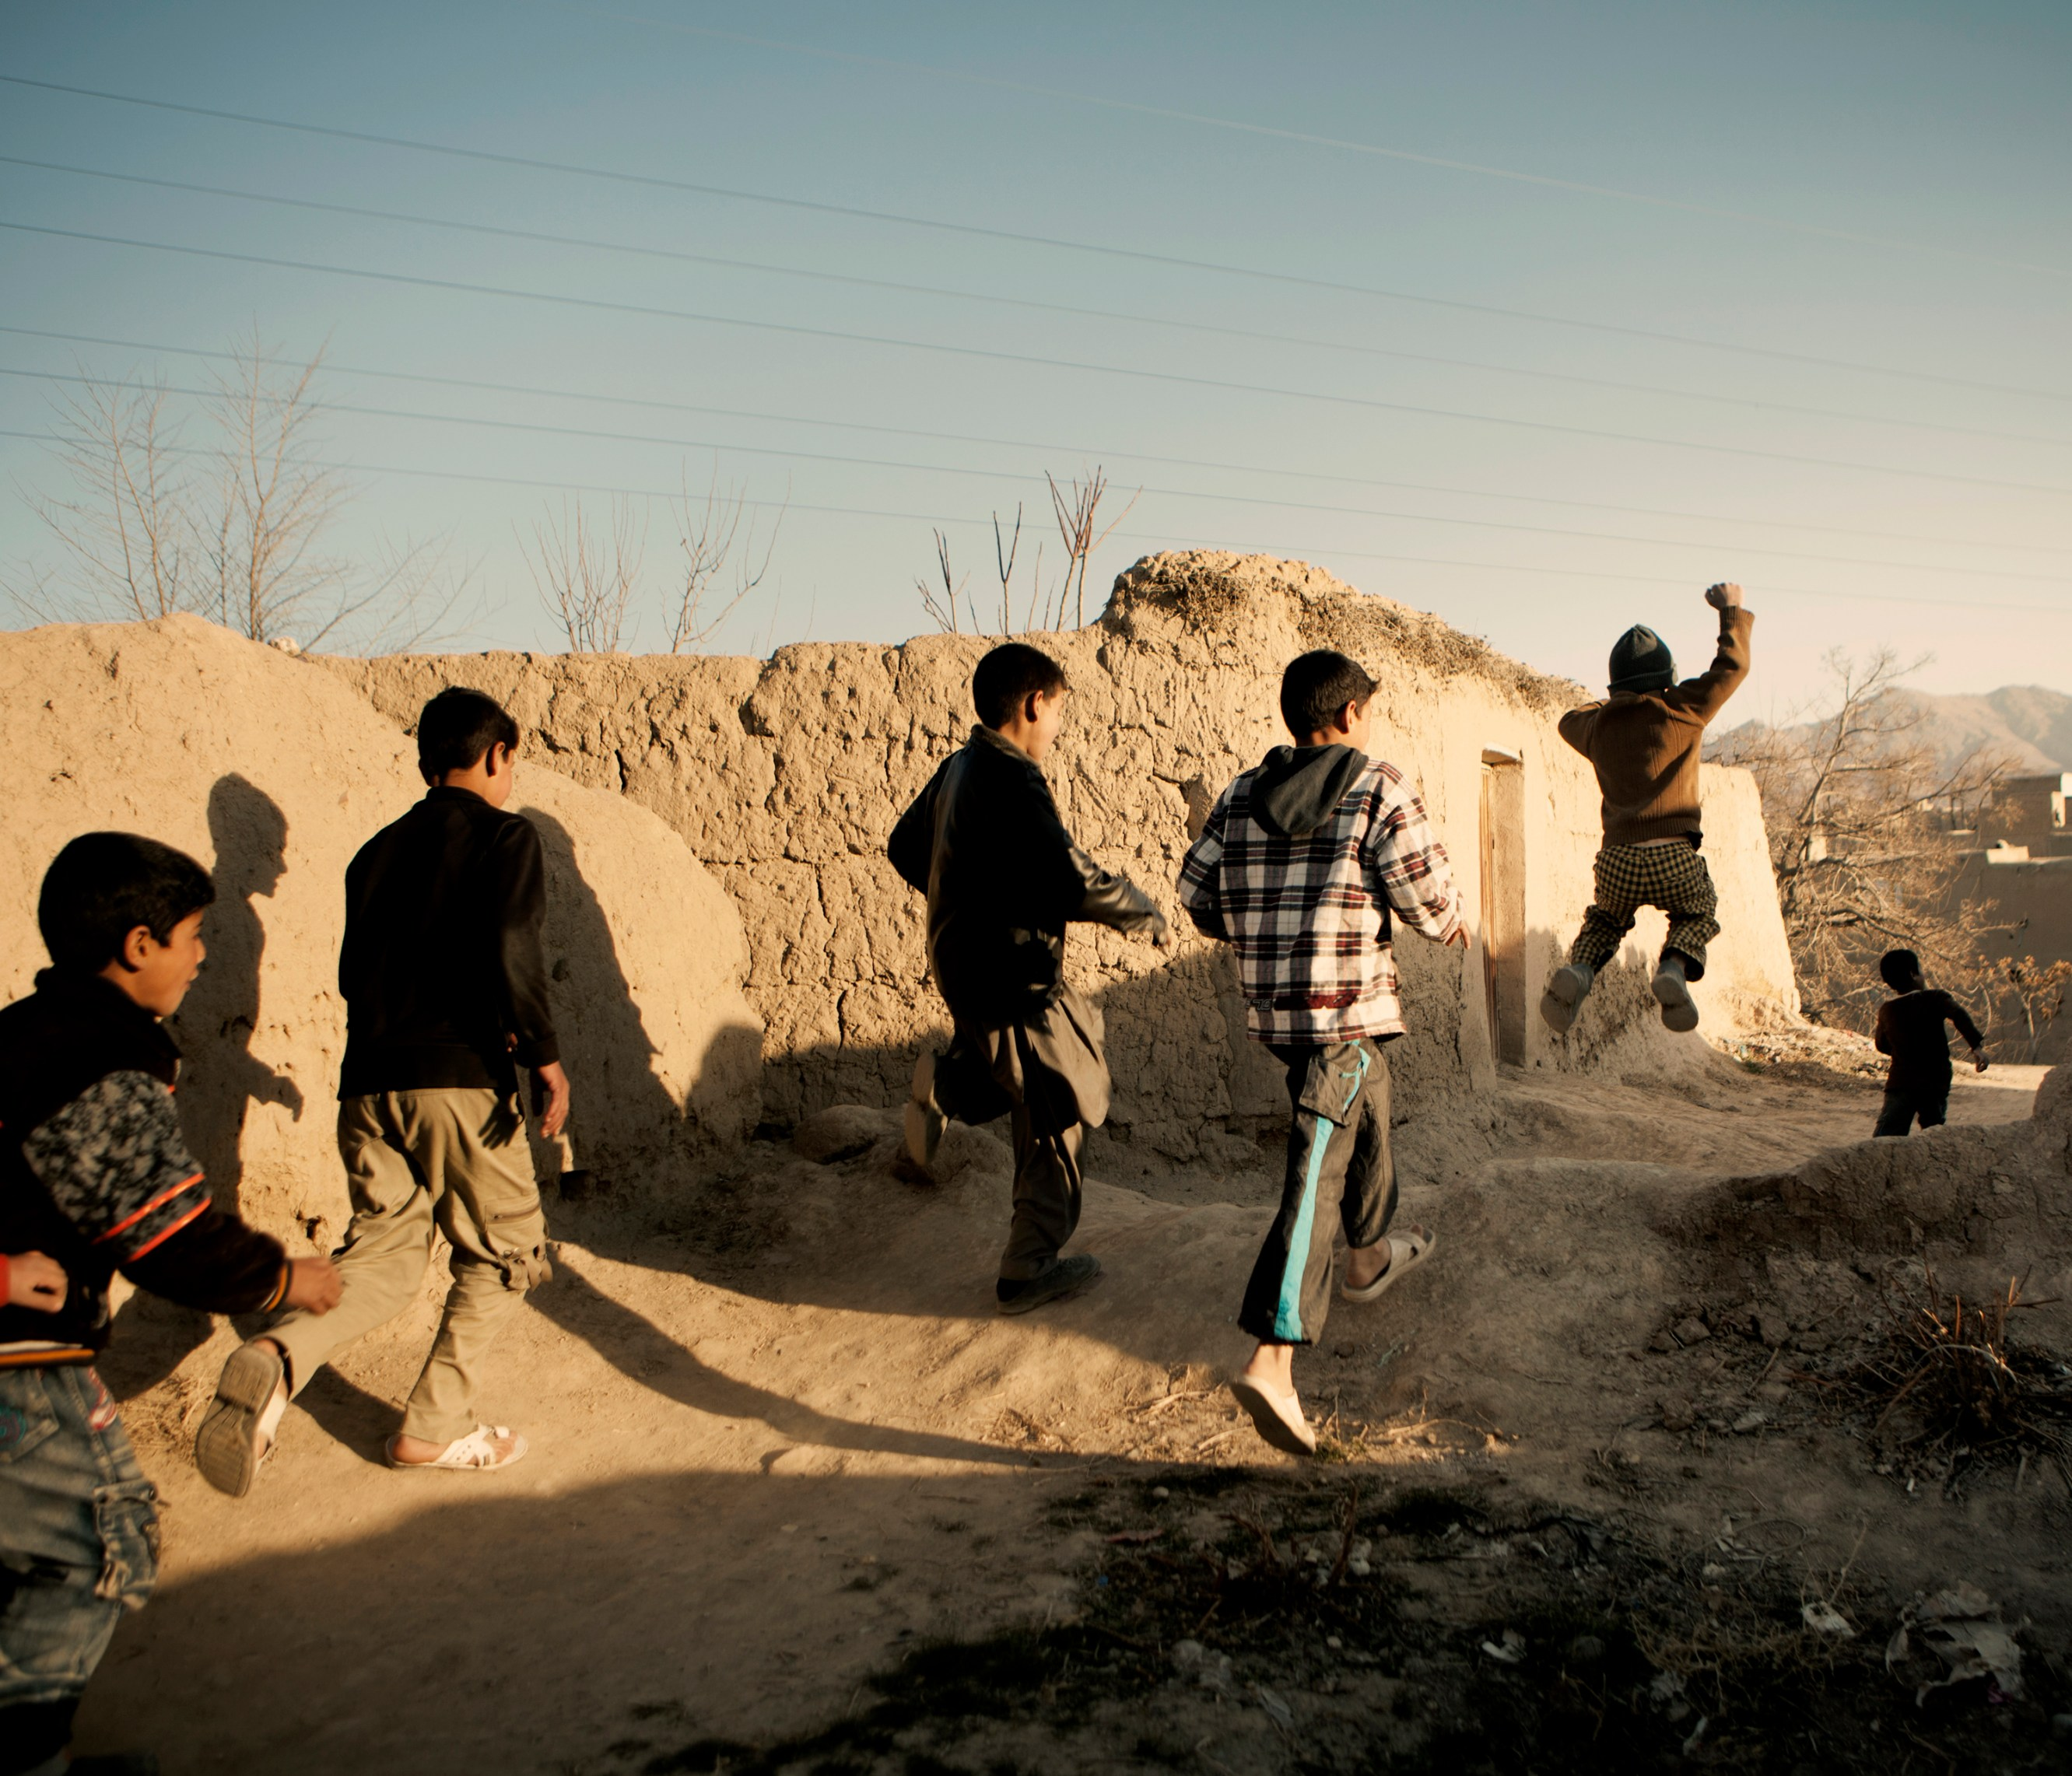 A group of boys leaping and jumping as they run through a back lane in a mud brick village. In June 2011, President Obama announced his plan to begin the withdrawal of US troops from Afghanistan, but there is currently no end date for the war in the troubled country. Helmand is the largest province in Afghanistan, and the heart of the war against terror. Commanders on the ground have described the situation as the most brutal conflict the British Army has been involved in since the Korean War. Much of the fighting between NATO and Taliban forces is taking place in this province and Helmand is a true Taliban stronghold. The Helmand River flows through the mainly desert region. With these images I am trying to show a softer side to this troubled area of Afghanistan.